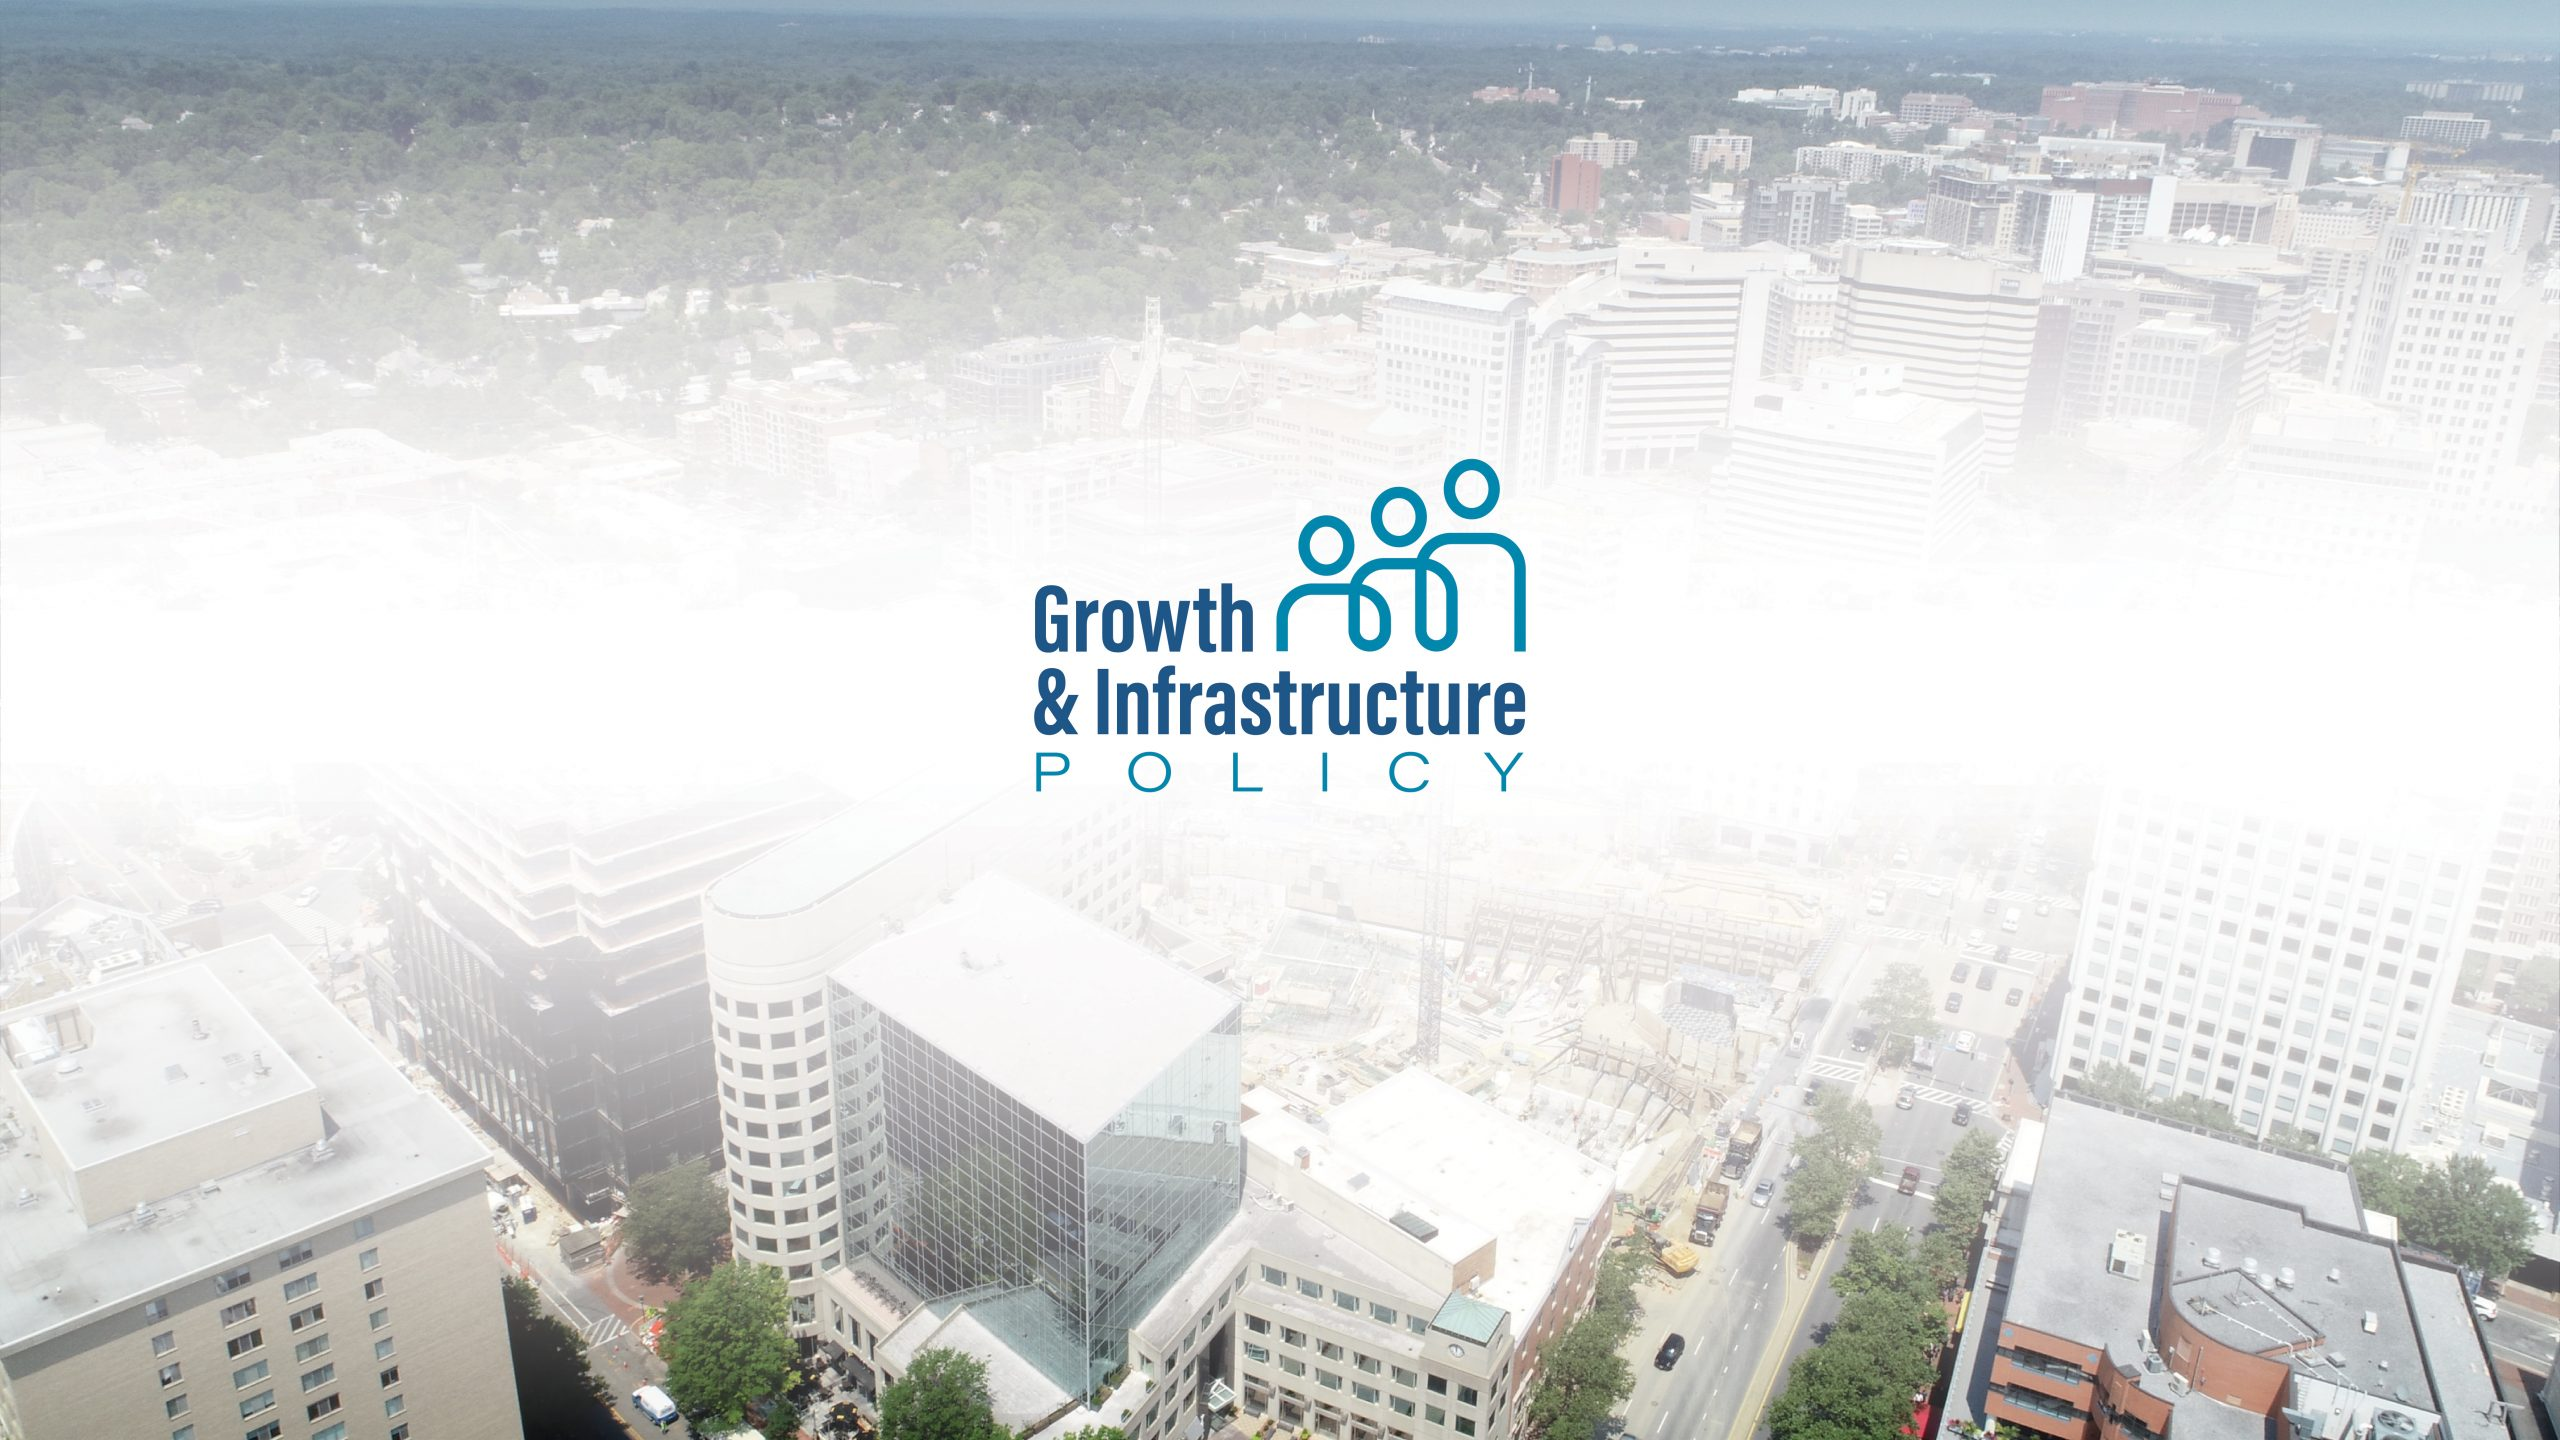 County Growth and Infrastructure Policy Approved